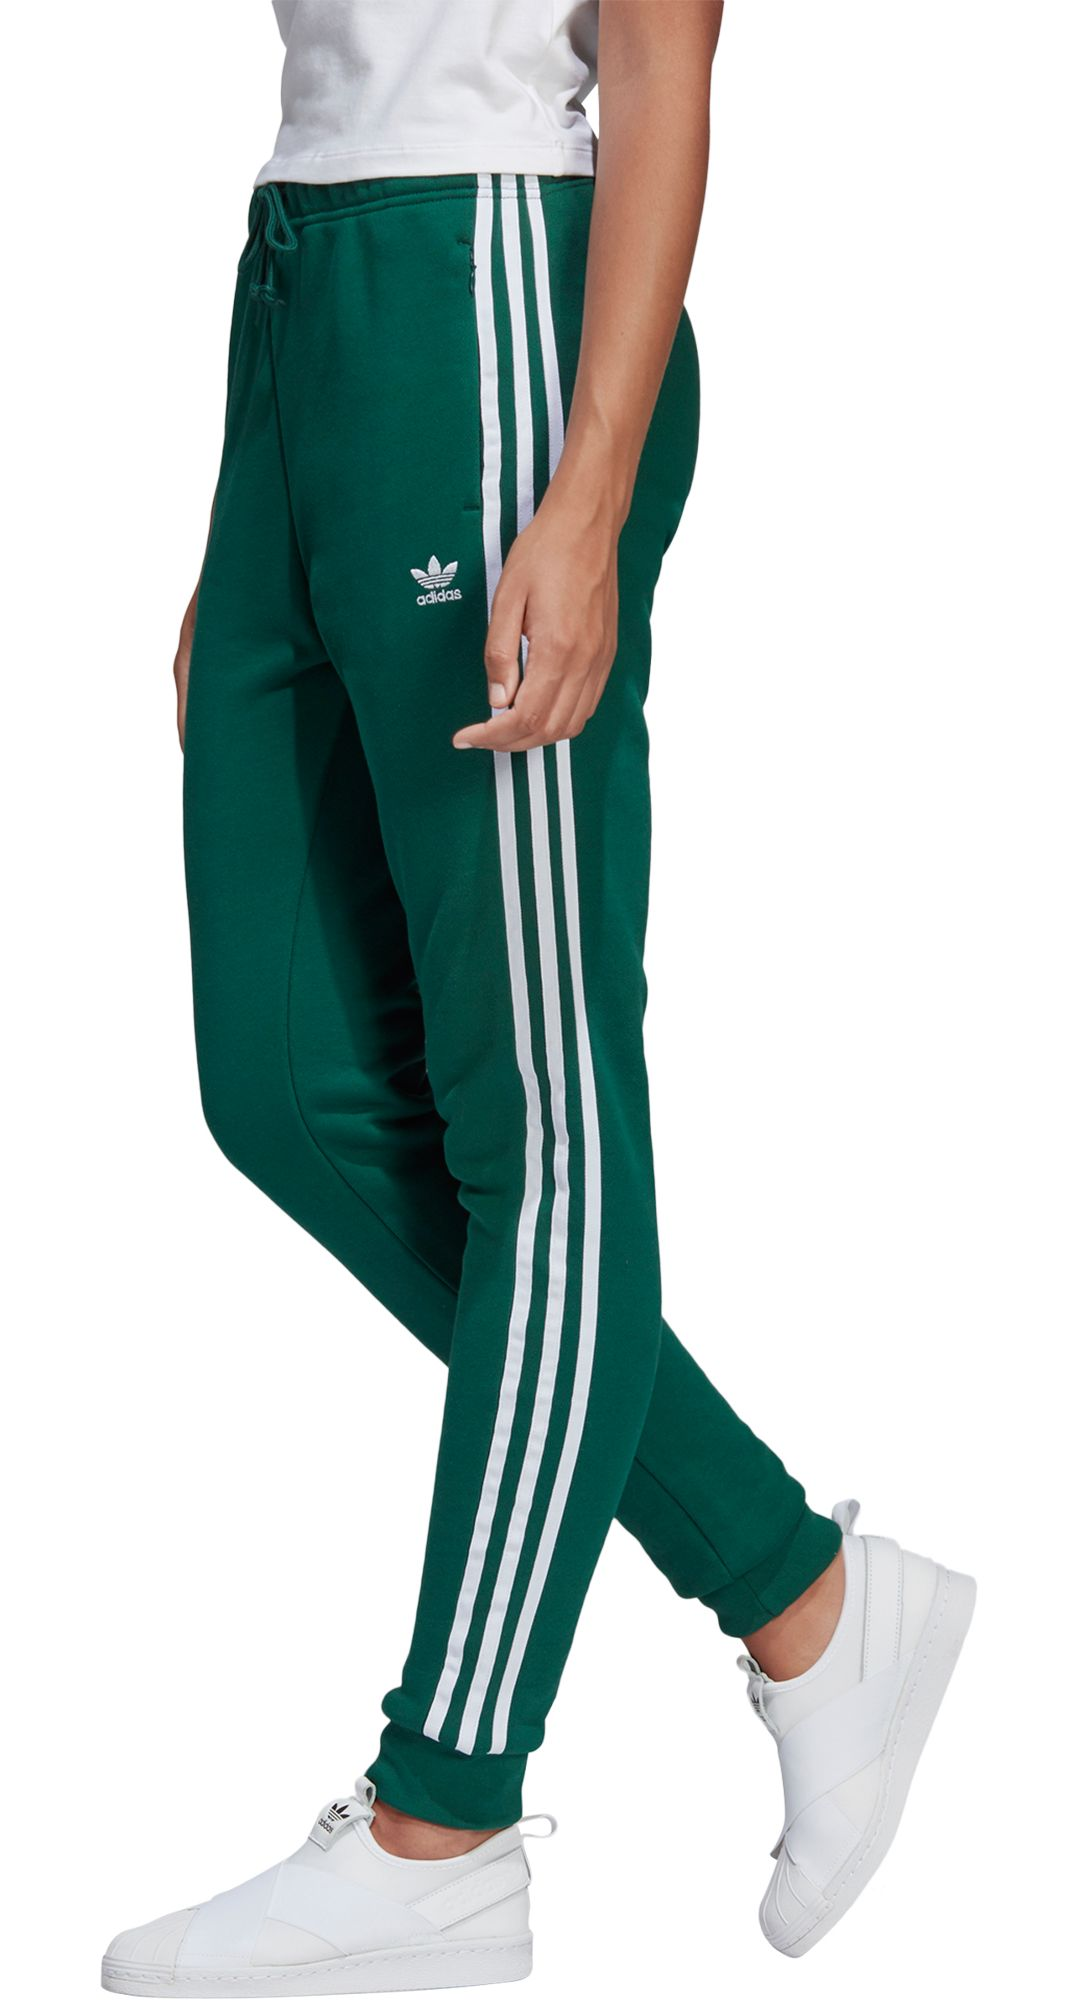 74487c0b2a616 adidas Originals Women's Cuffed Track Pants. noImageFound. Previous. 1. 2. 3